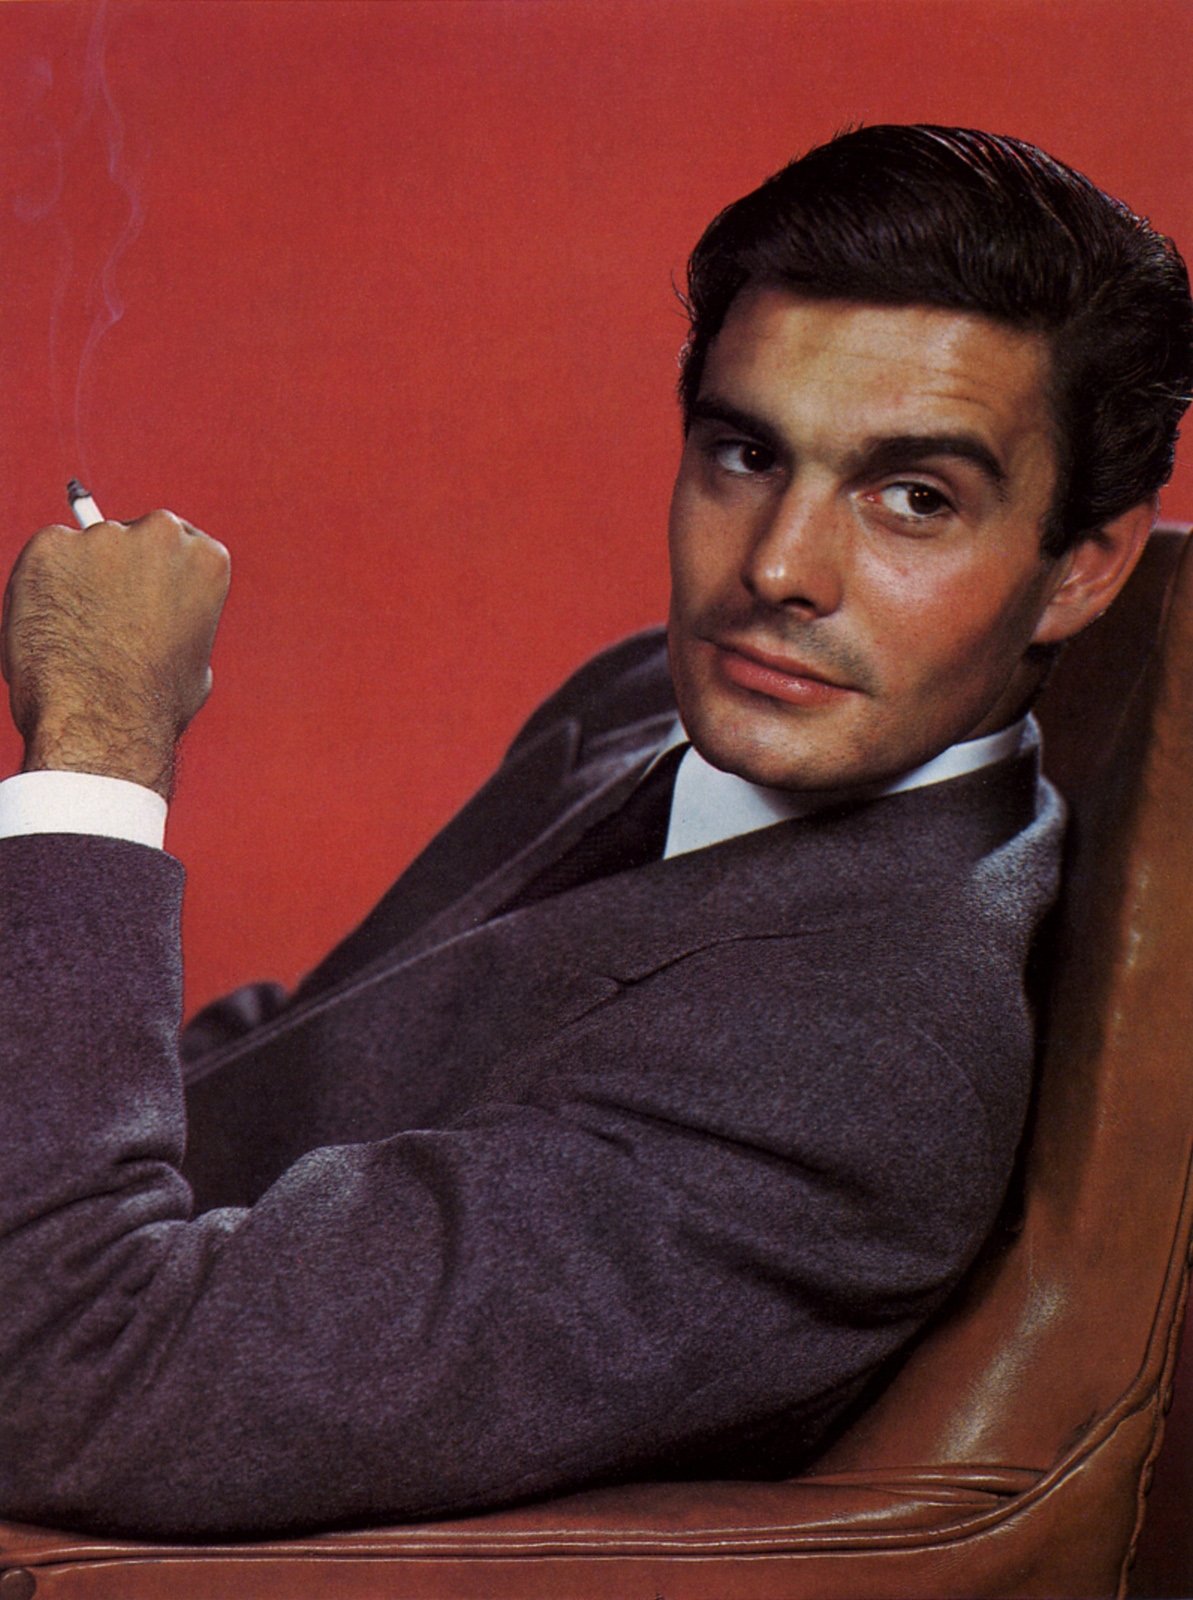 louis jourdan sonlouis jourdan часы, louis jourdan son, louis jourdan facebook, louis jourdan wikipedia, louis jourdan youtube, louis jourdan junior, louis jourdan uhr, louis jourdan kamal khan, louis jourdan luthier, louis jourdan son death, louis jourdan et son fils, louis jourdan 2014, louis jourdan net worth, louis jourdan films, louis jourdan family, louis jourdan watch, louis jourdan biographie